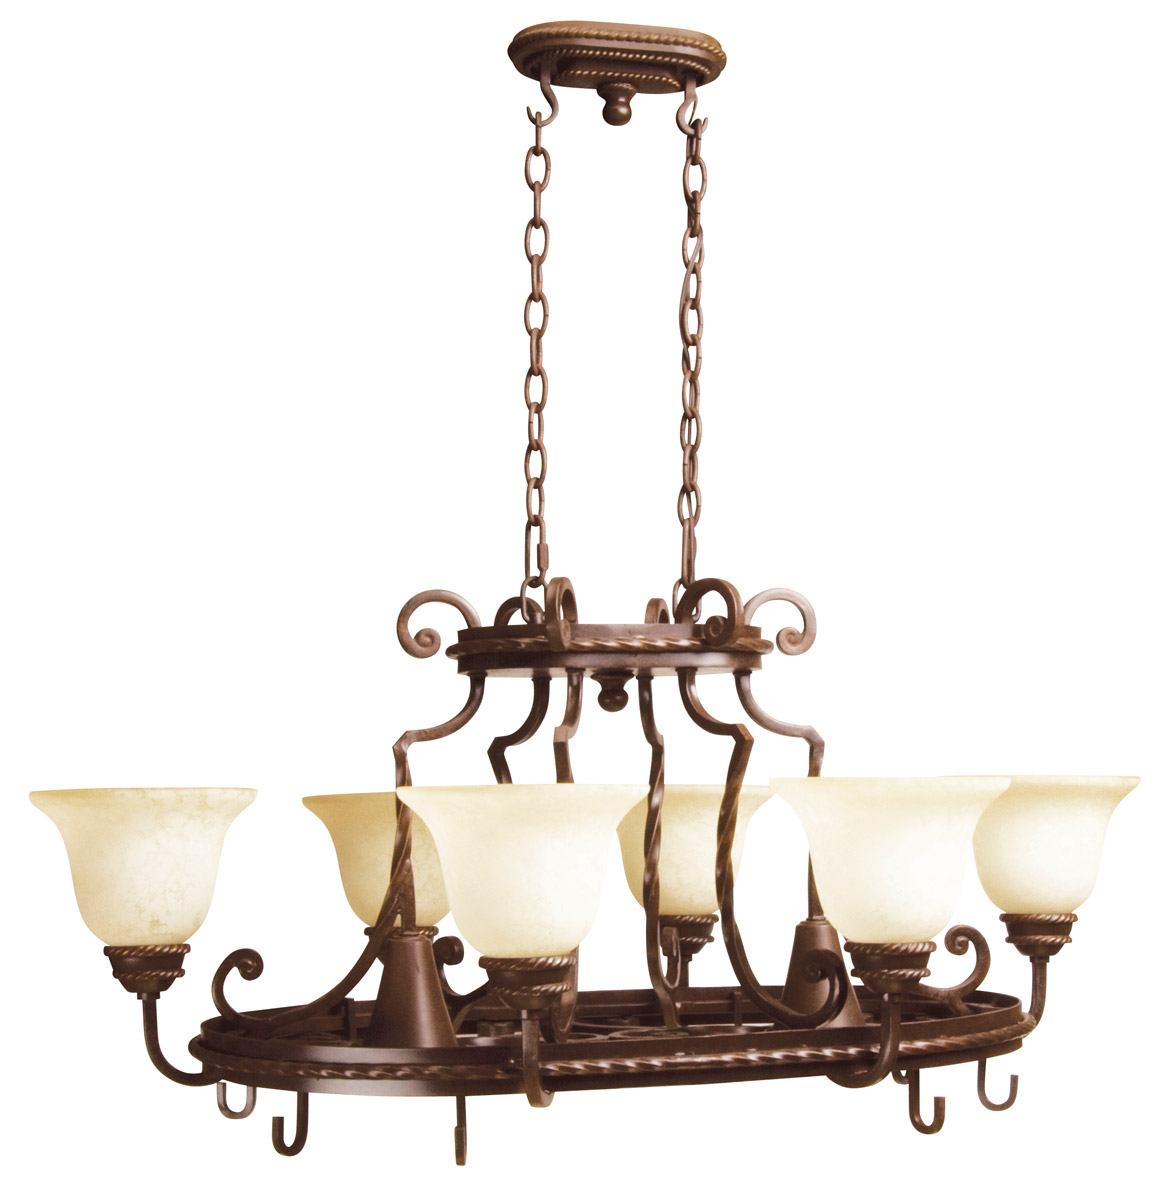 Jeremiah Riata 8-Light Pot Rack in Aged Bronze w/Antique Scavo Glass